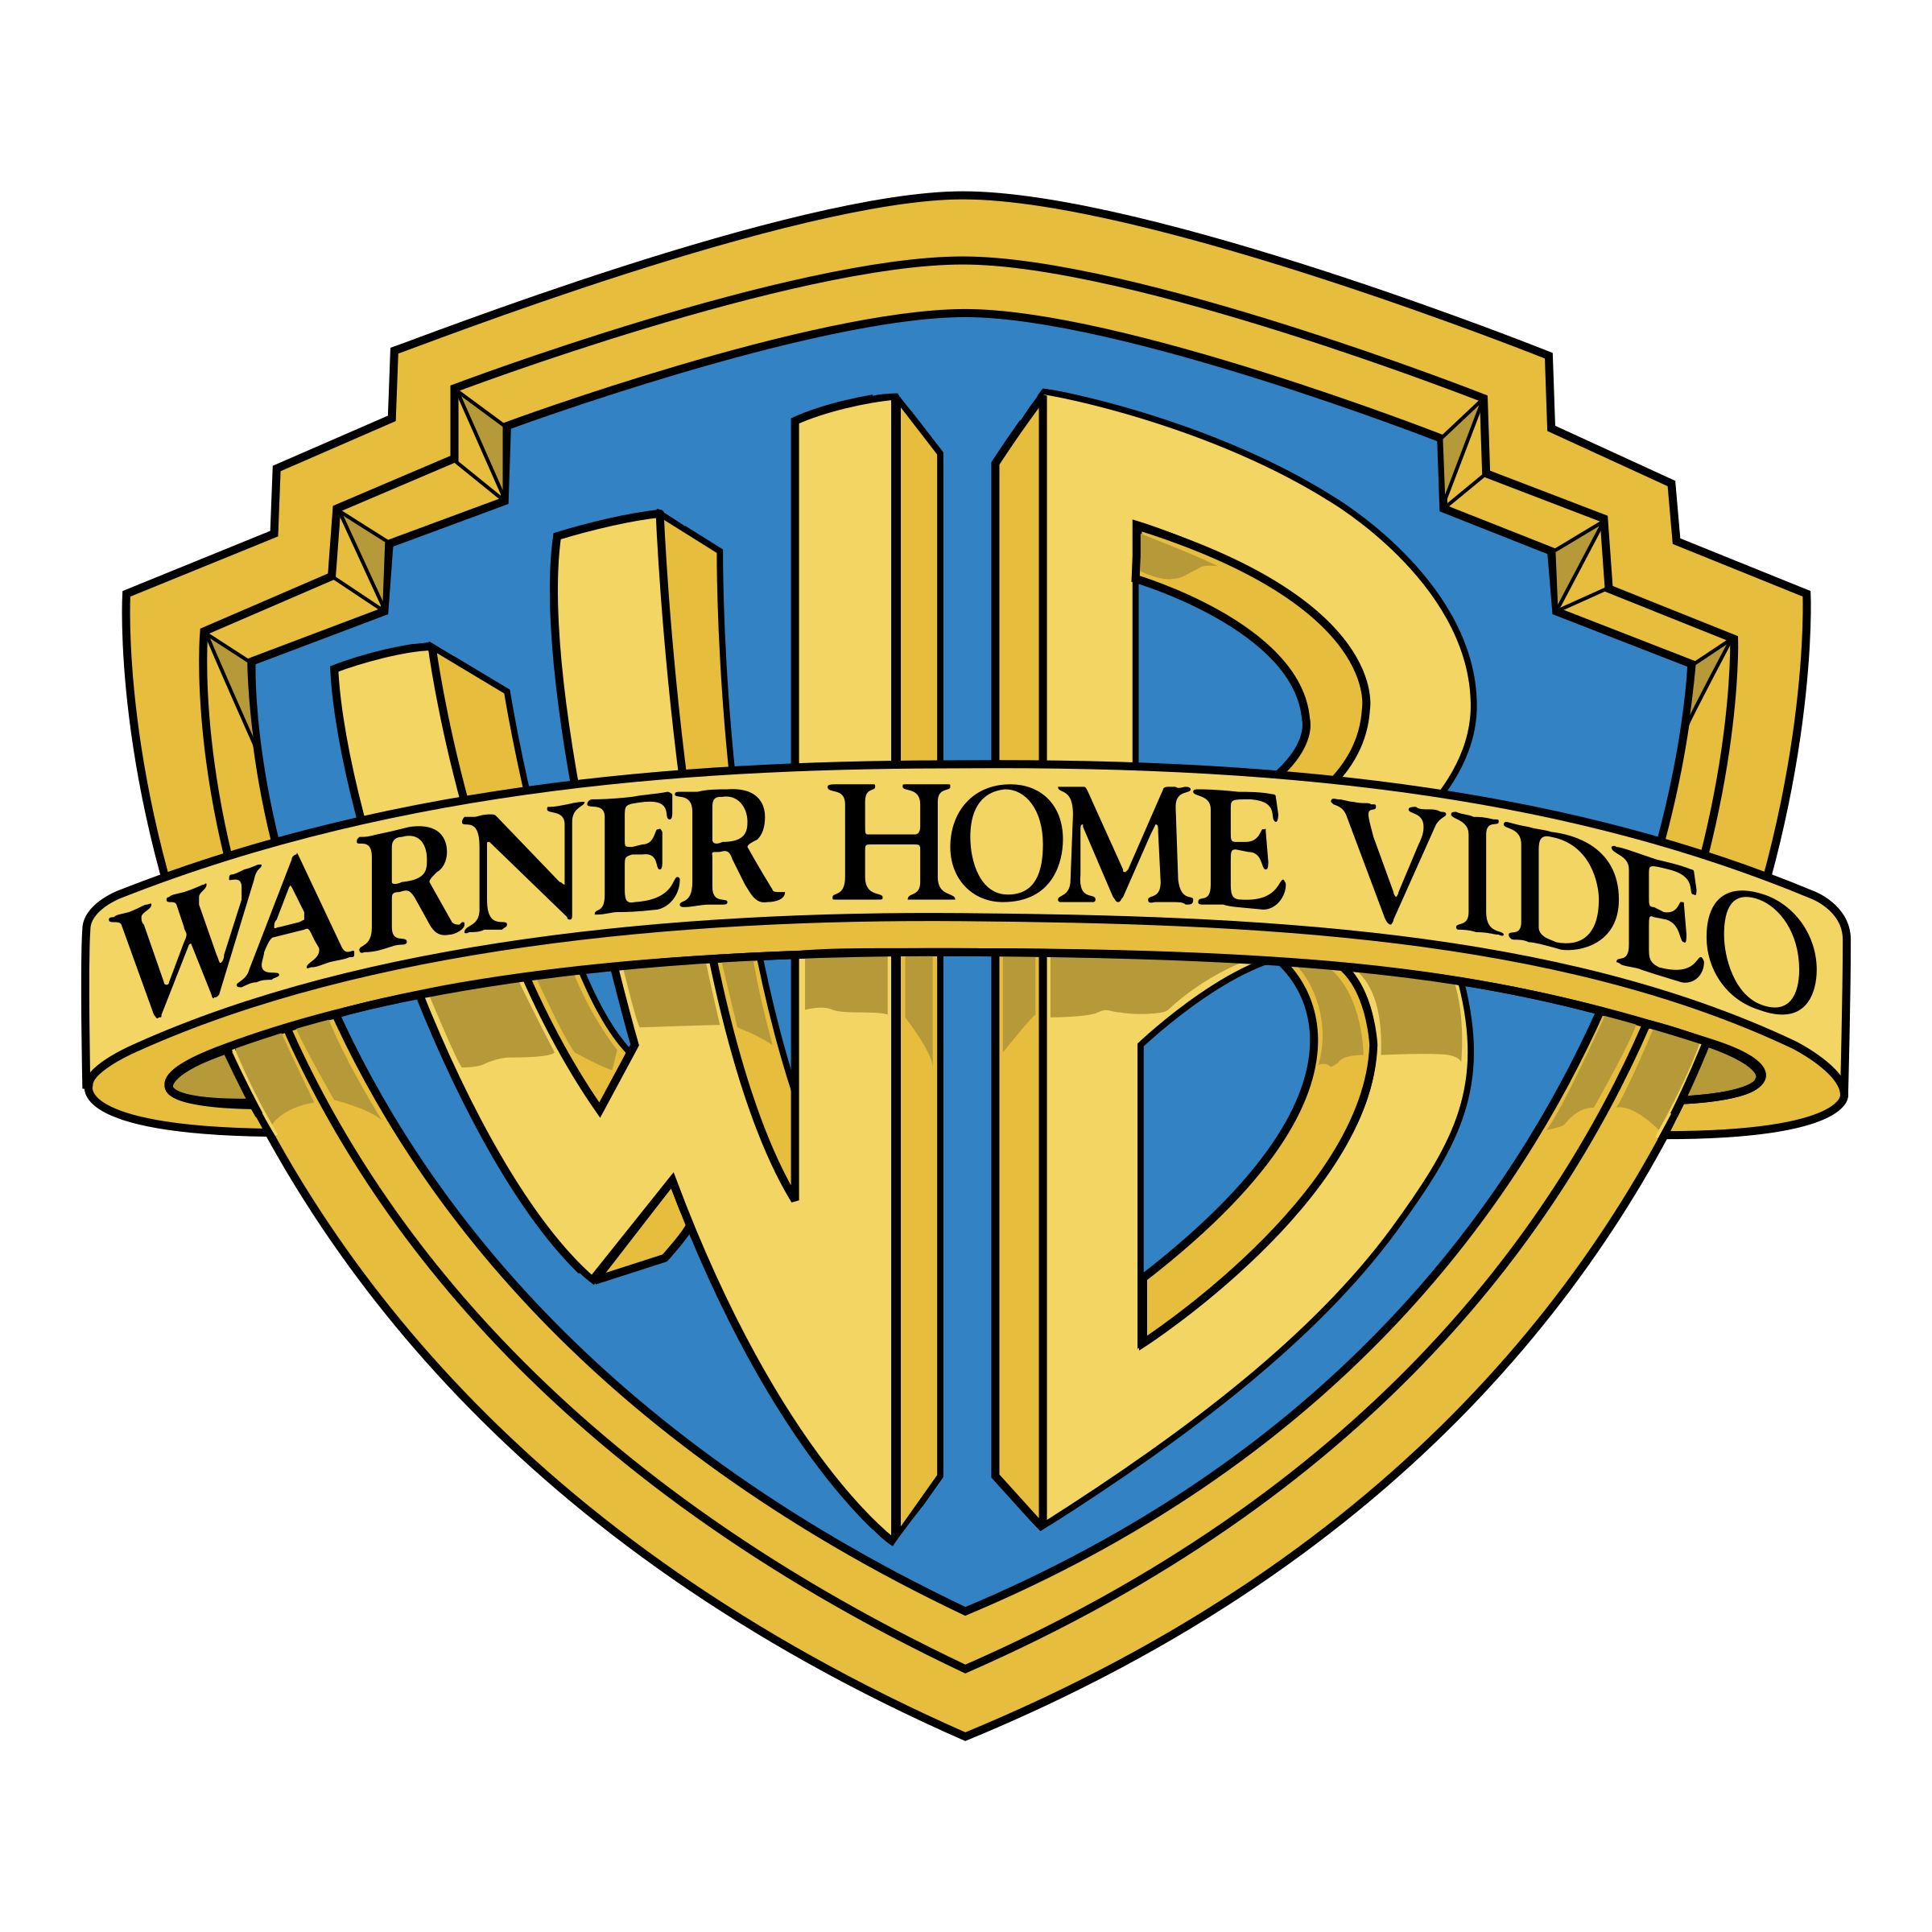 Warner Home Video Logo PNG Transparent & SVG Vector ...Warner Home Video Logo Png